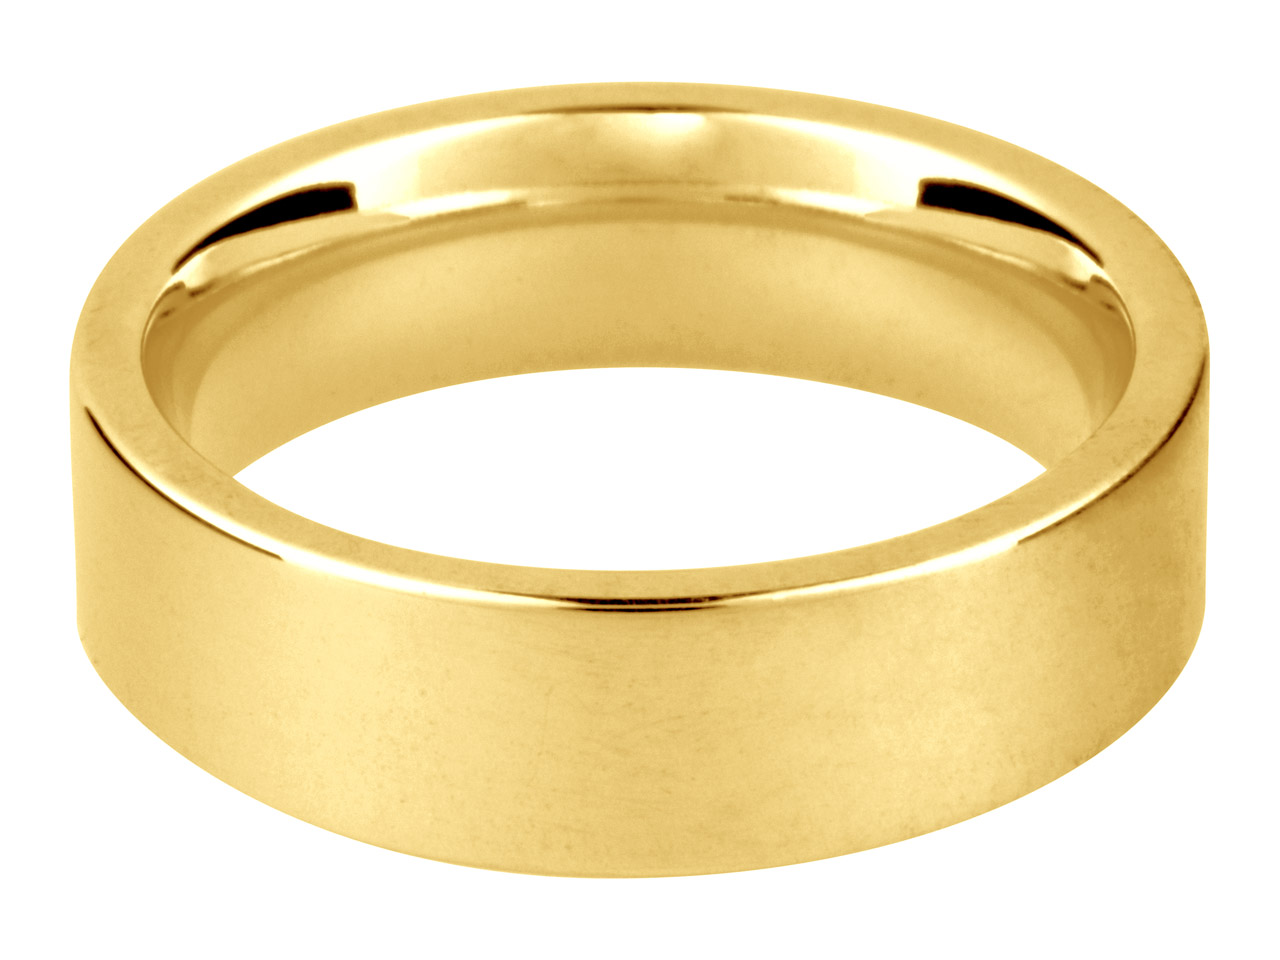 18ct Yellow Easy Fit Wedding Ring  4.0mm U 6.5gms Medium Weight       Hallmarked Wall Thickness 1.63mm